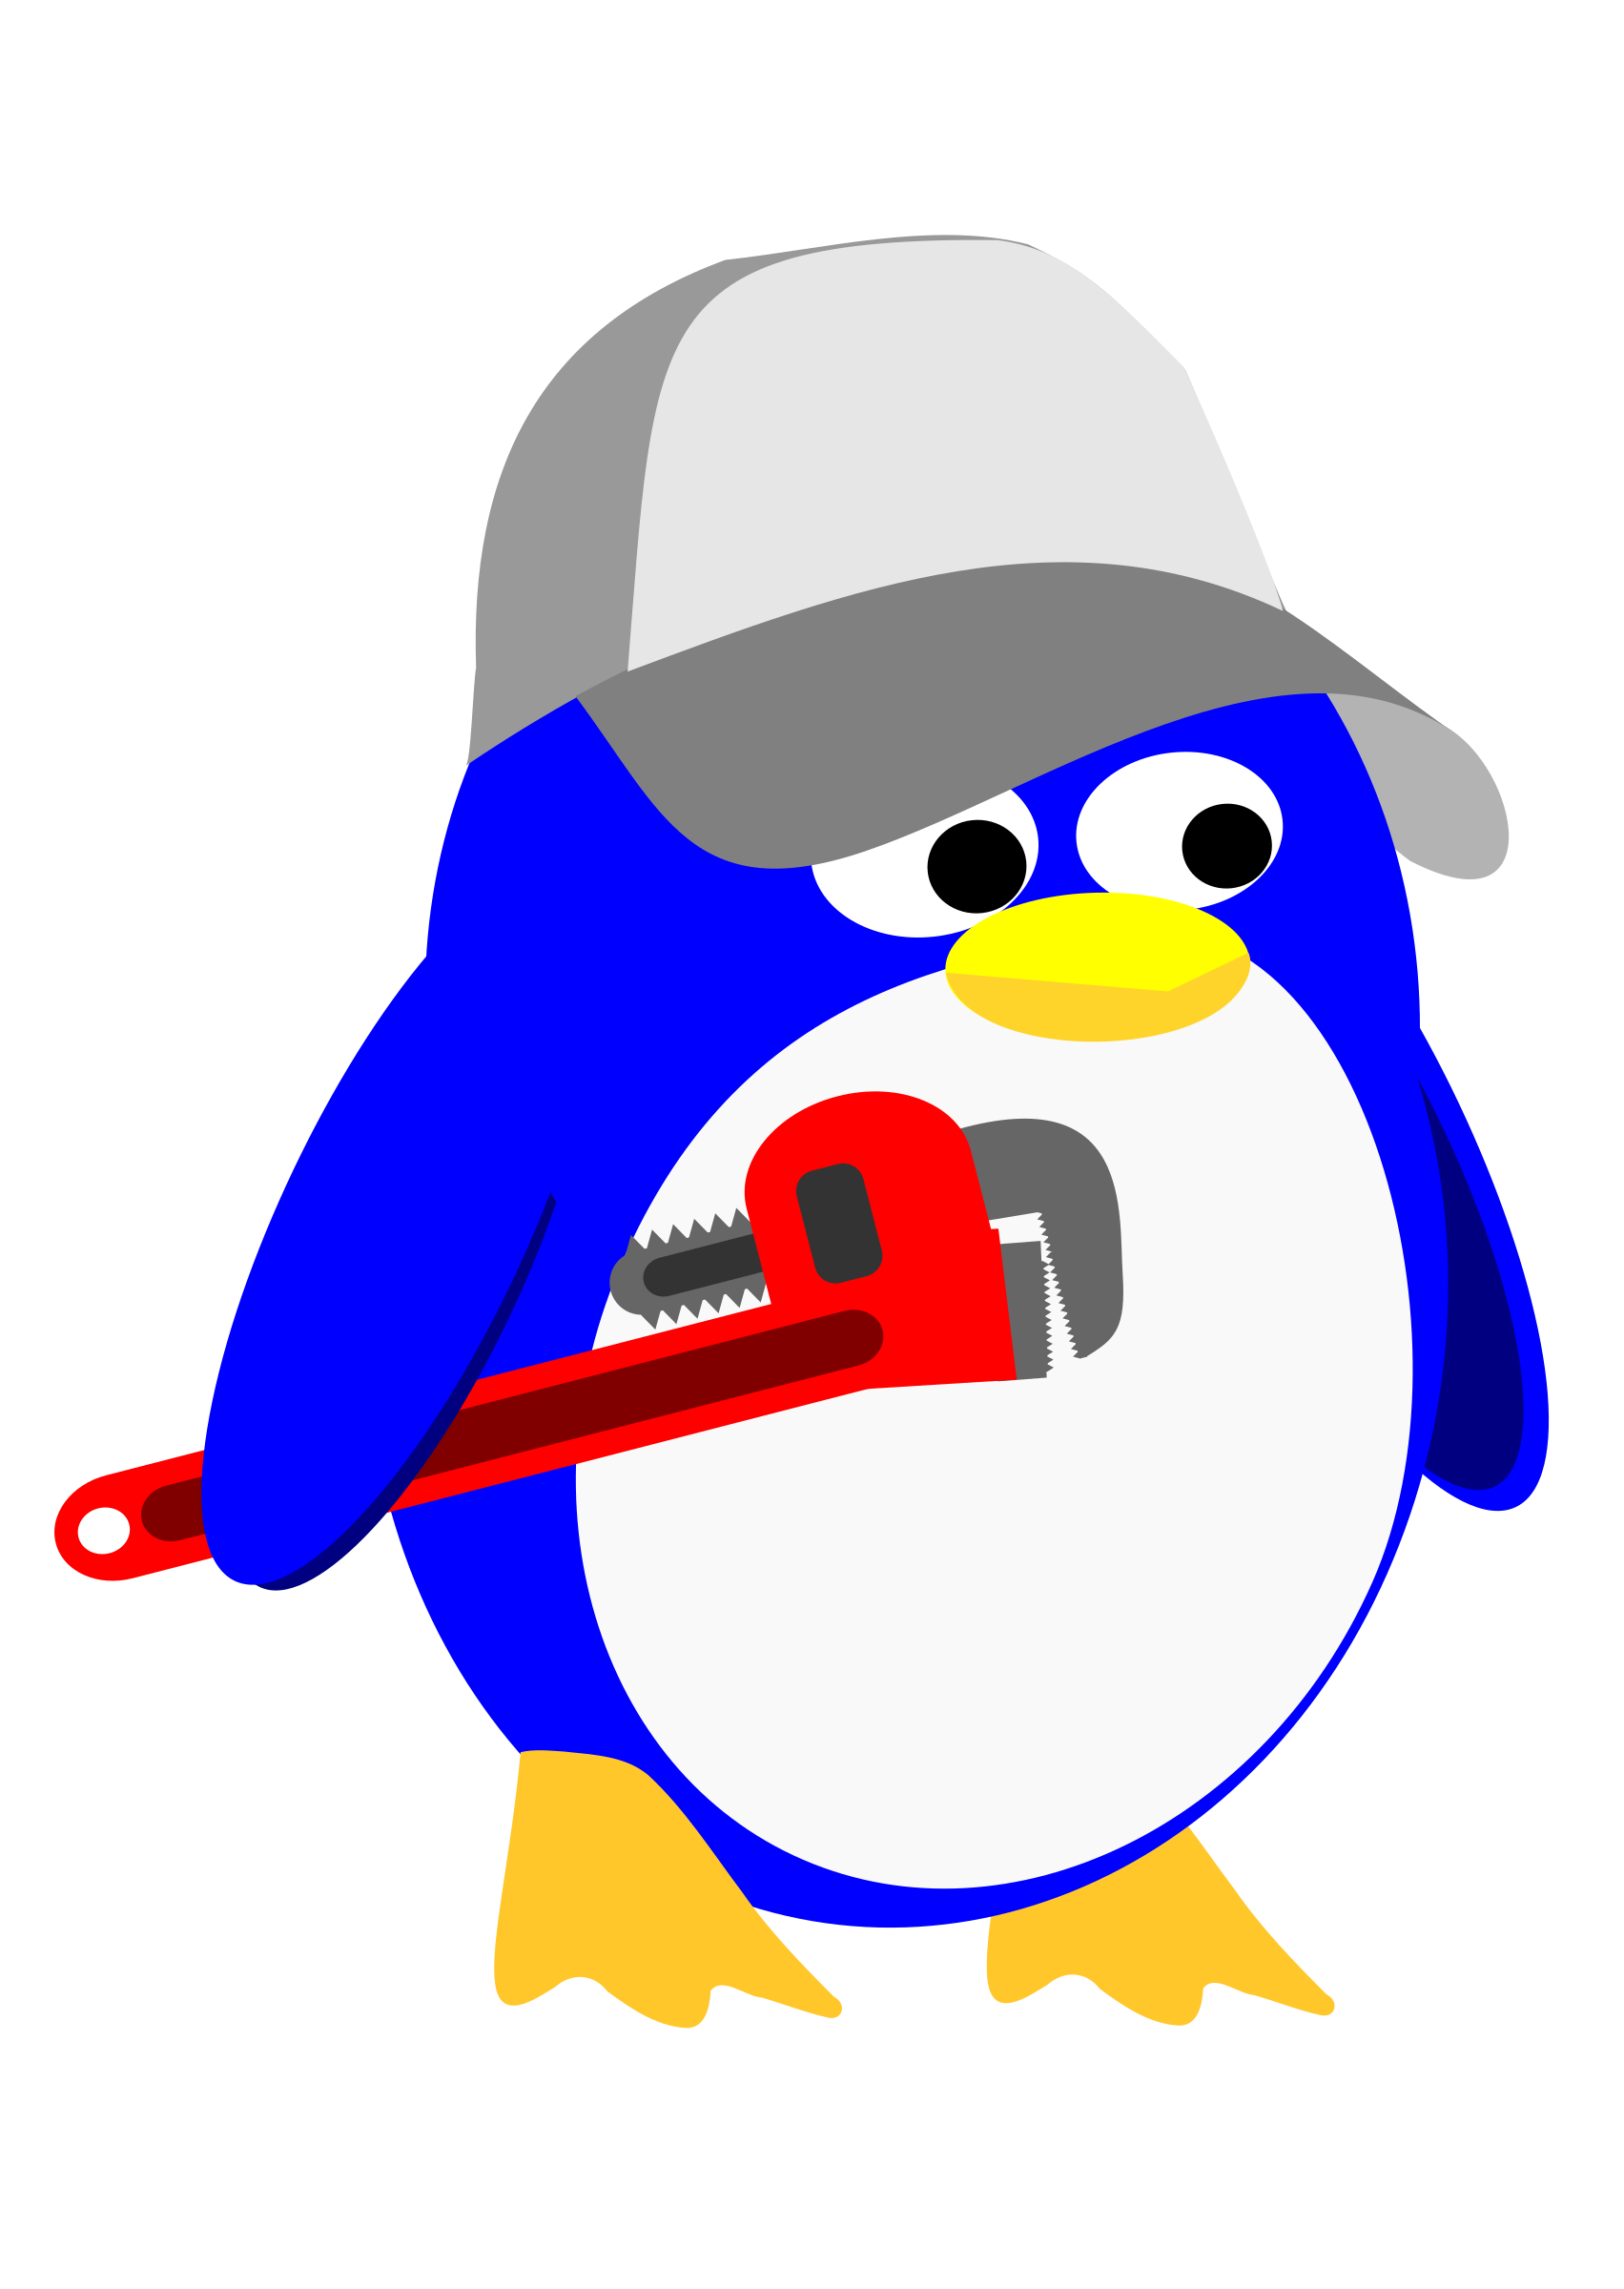 Plumber Penguin by tuxwrench